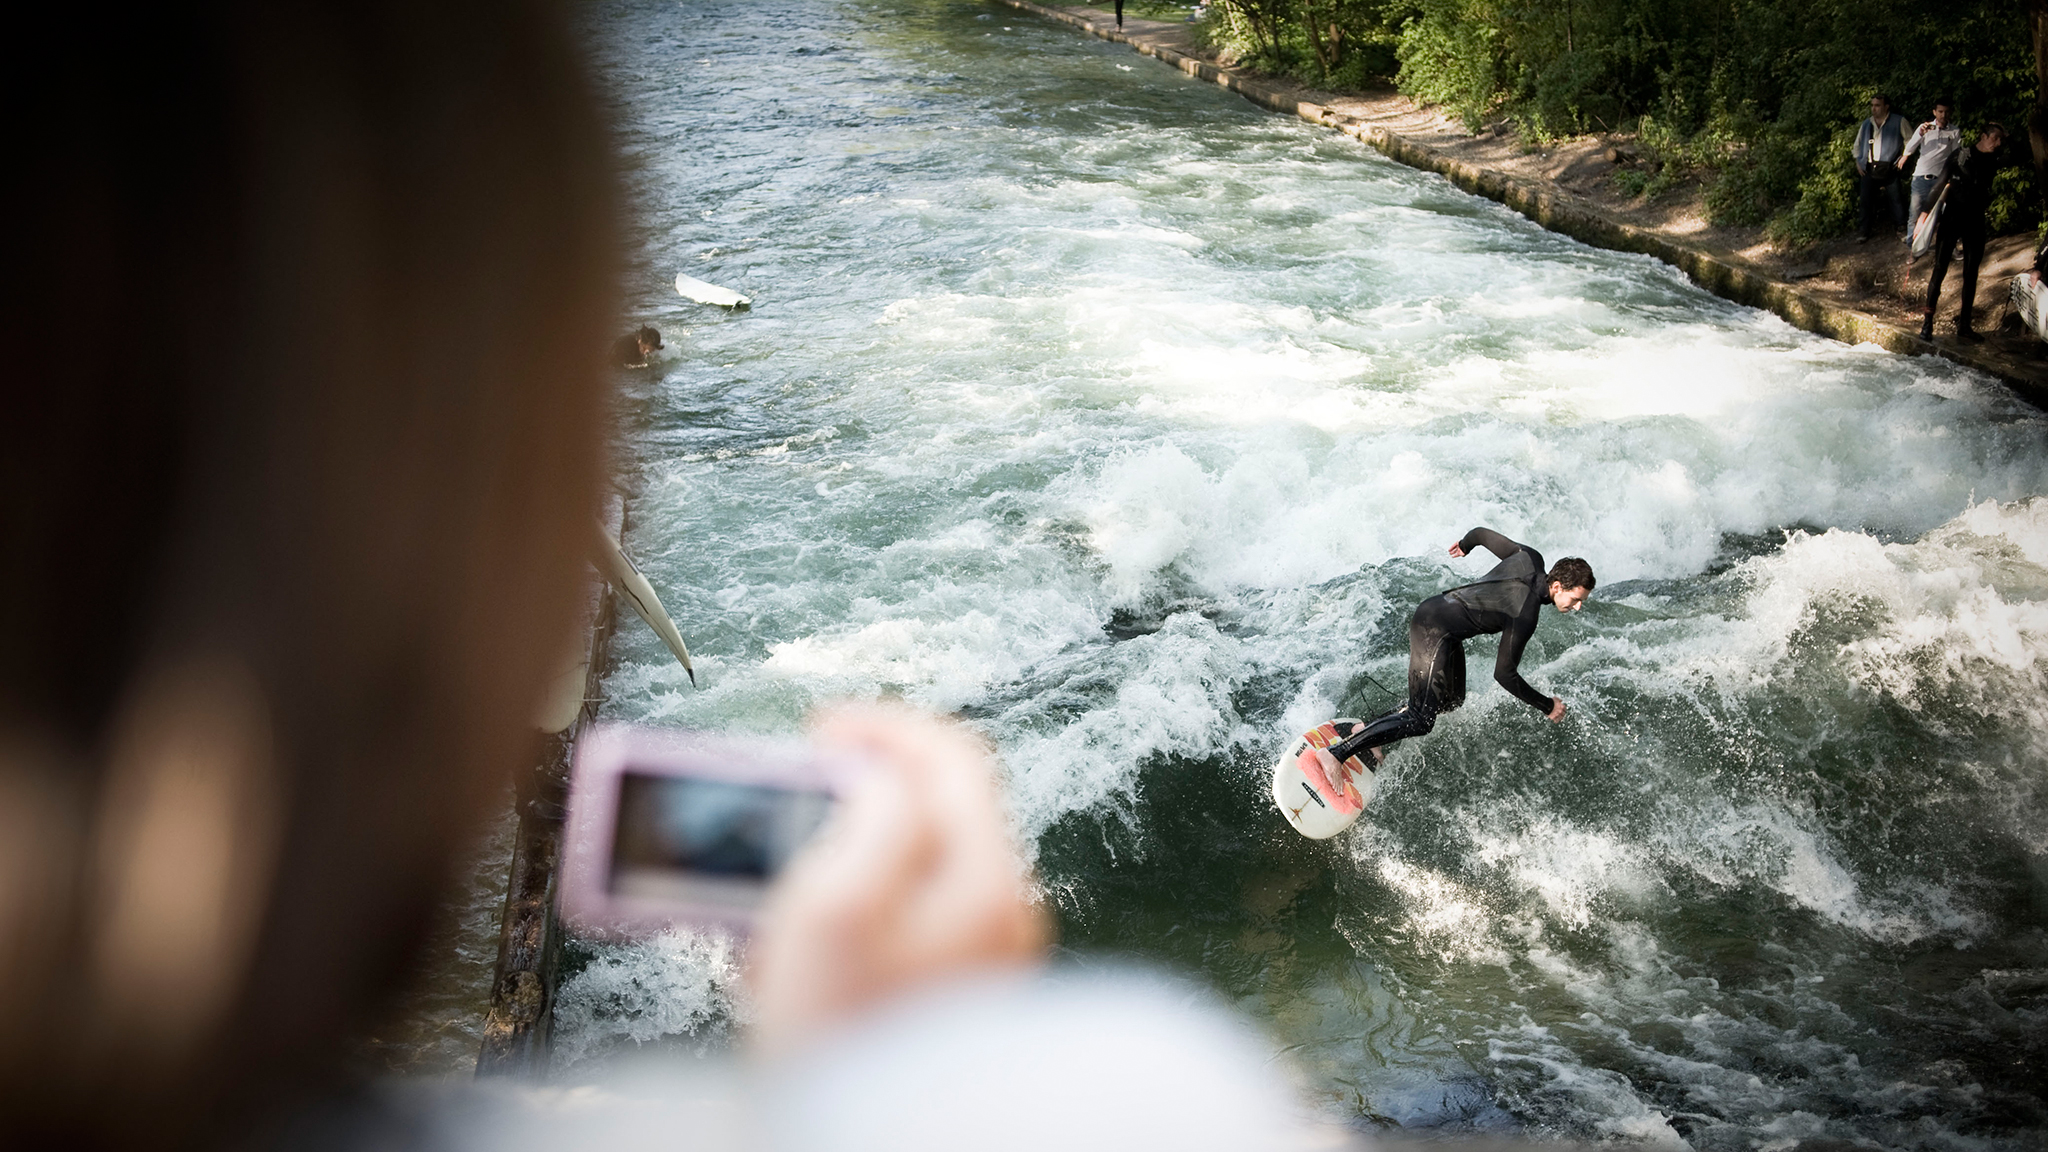 The Eisbach